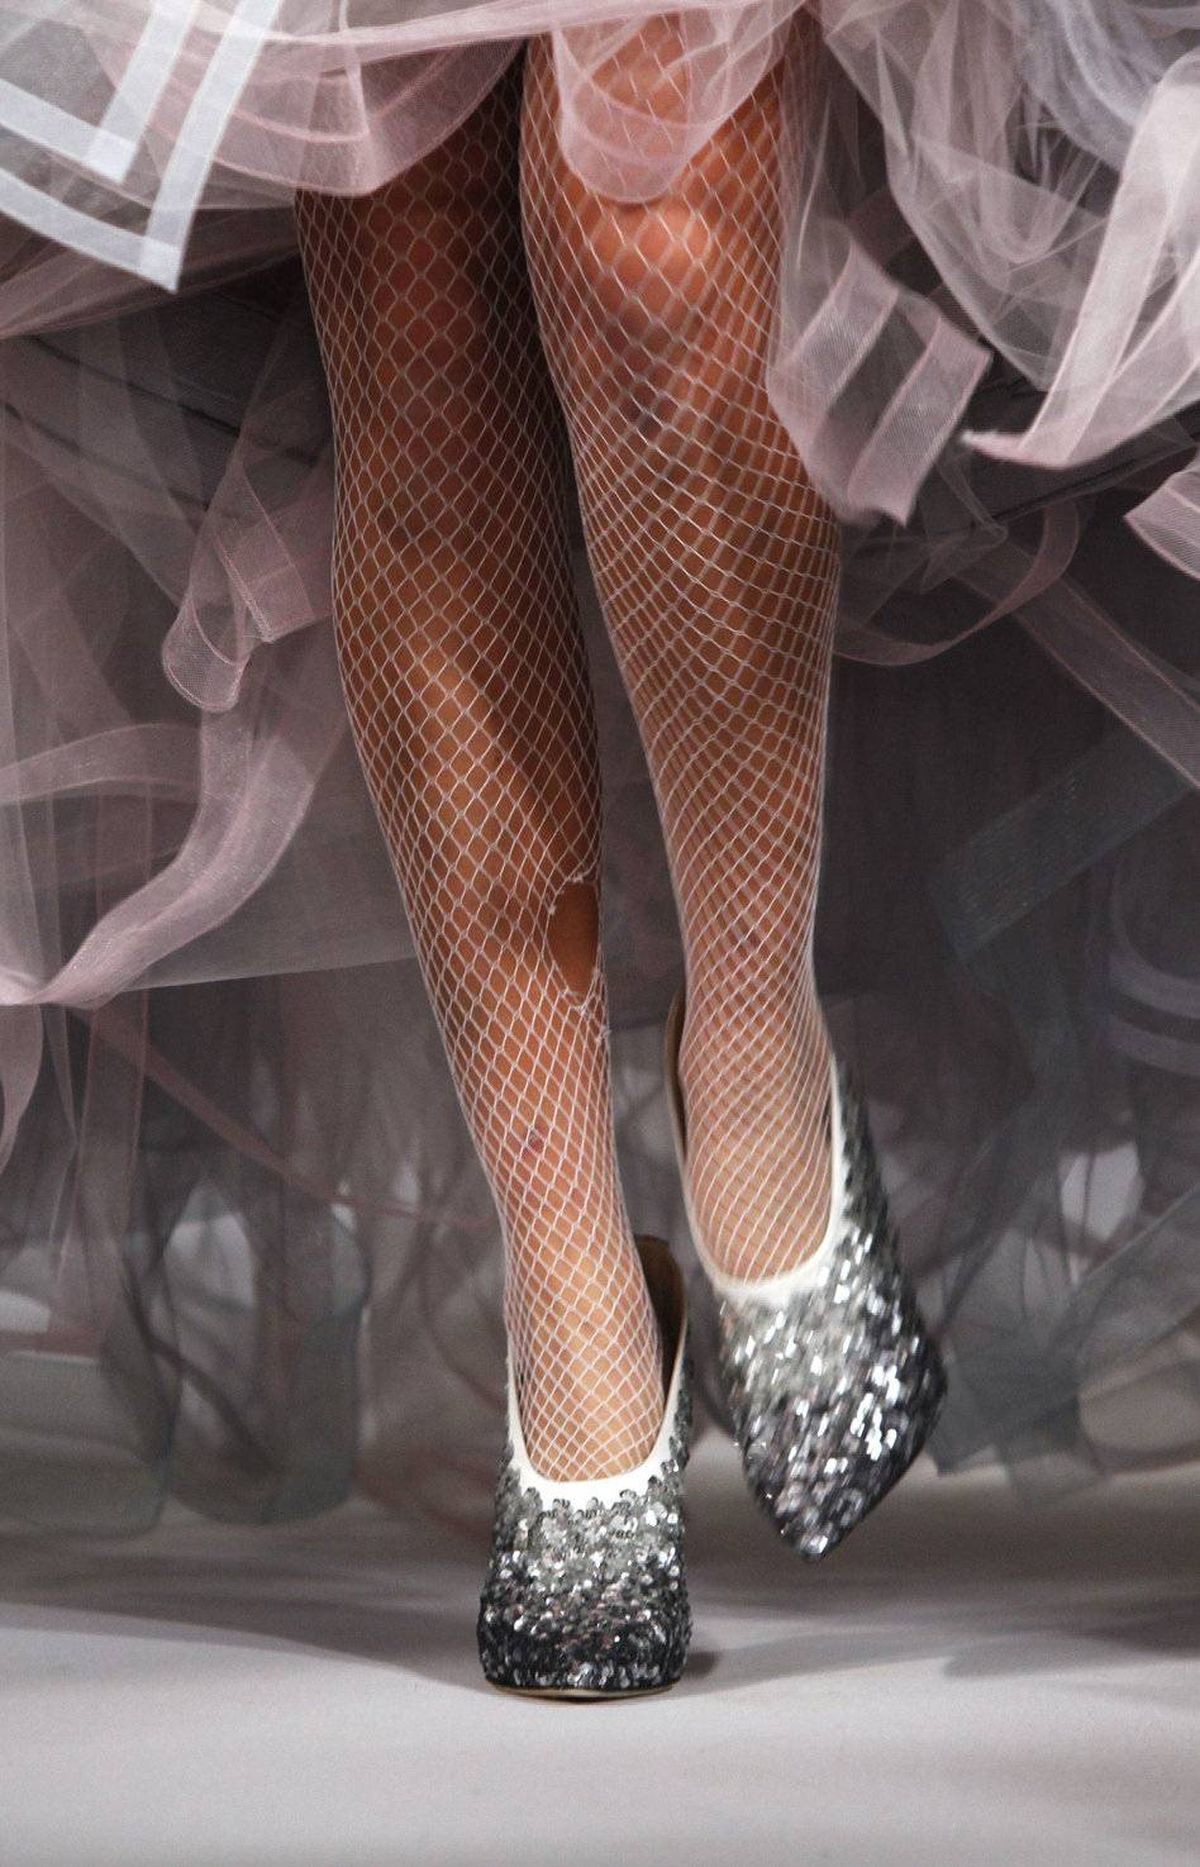 Go all-bijoux or go home; De La Rented carried the bejeweled theme right down to the glittery booties.